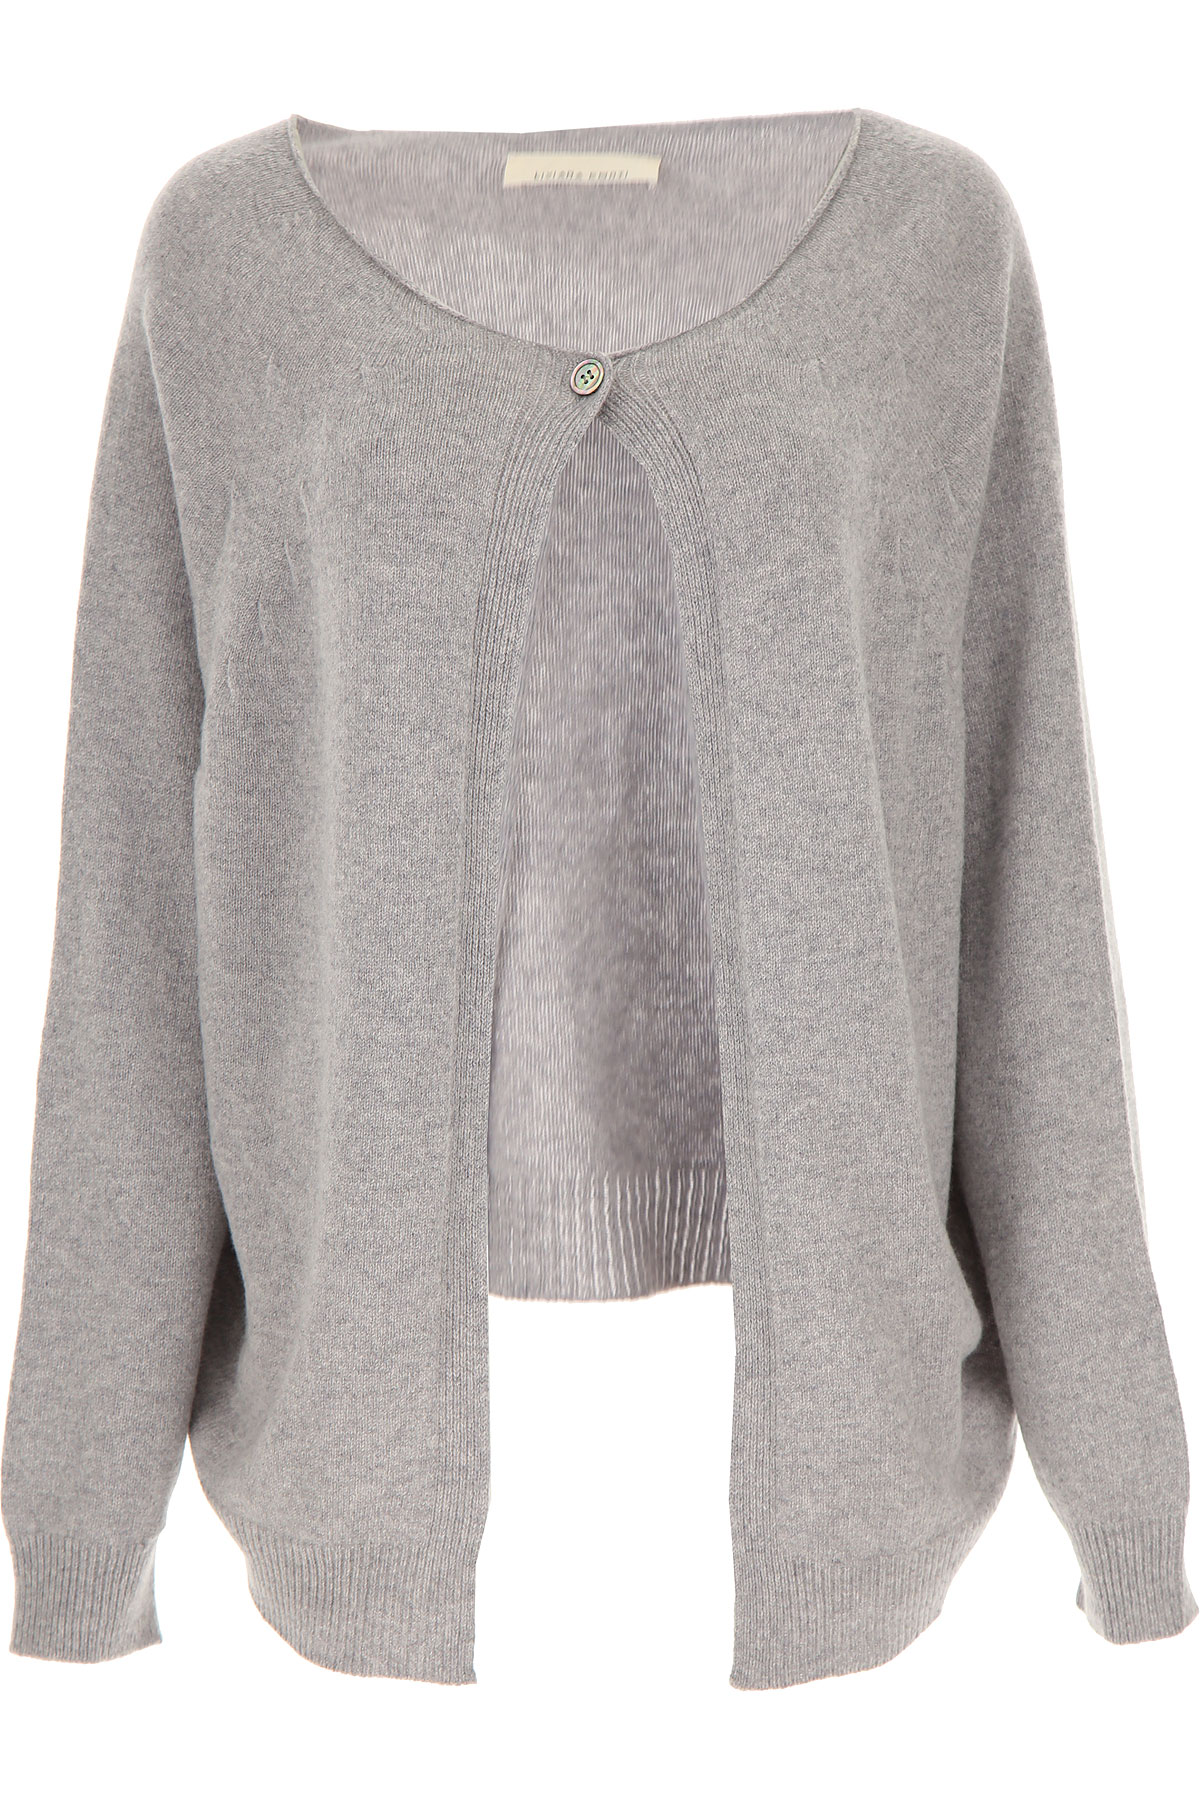 Liviana Conti Sweater for Women Jumper On Sale, Grey, Virgin wool, 2019, 4 6